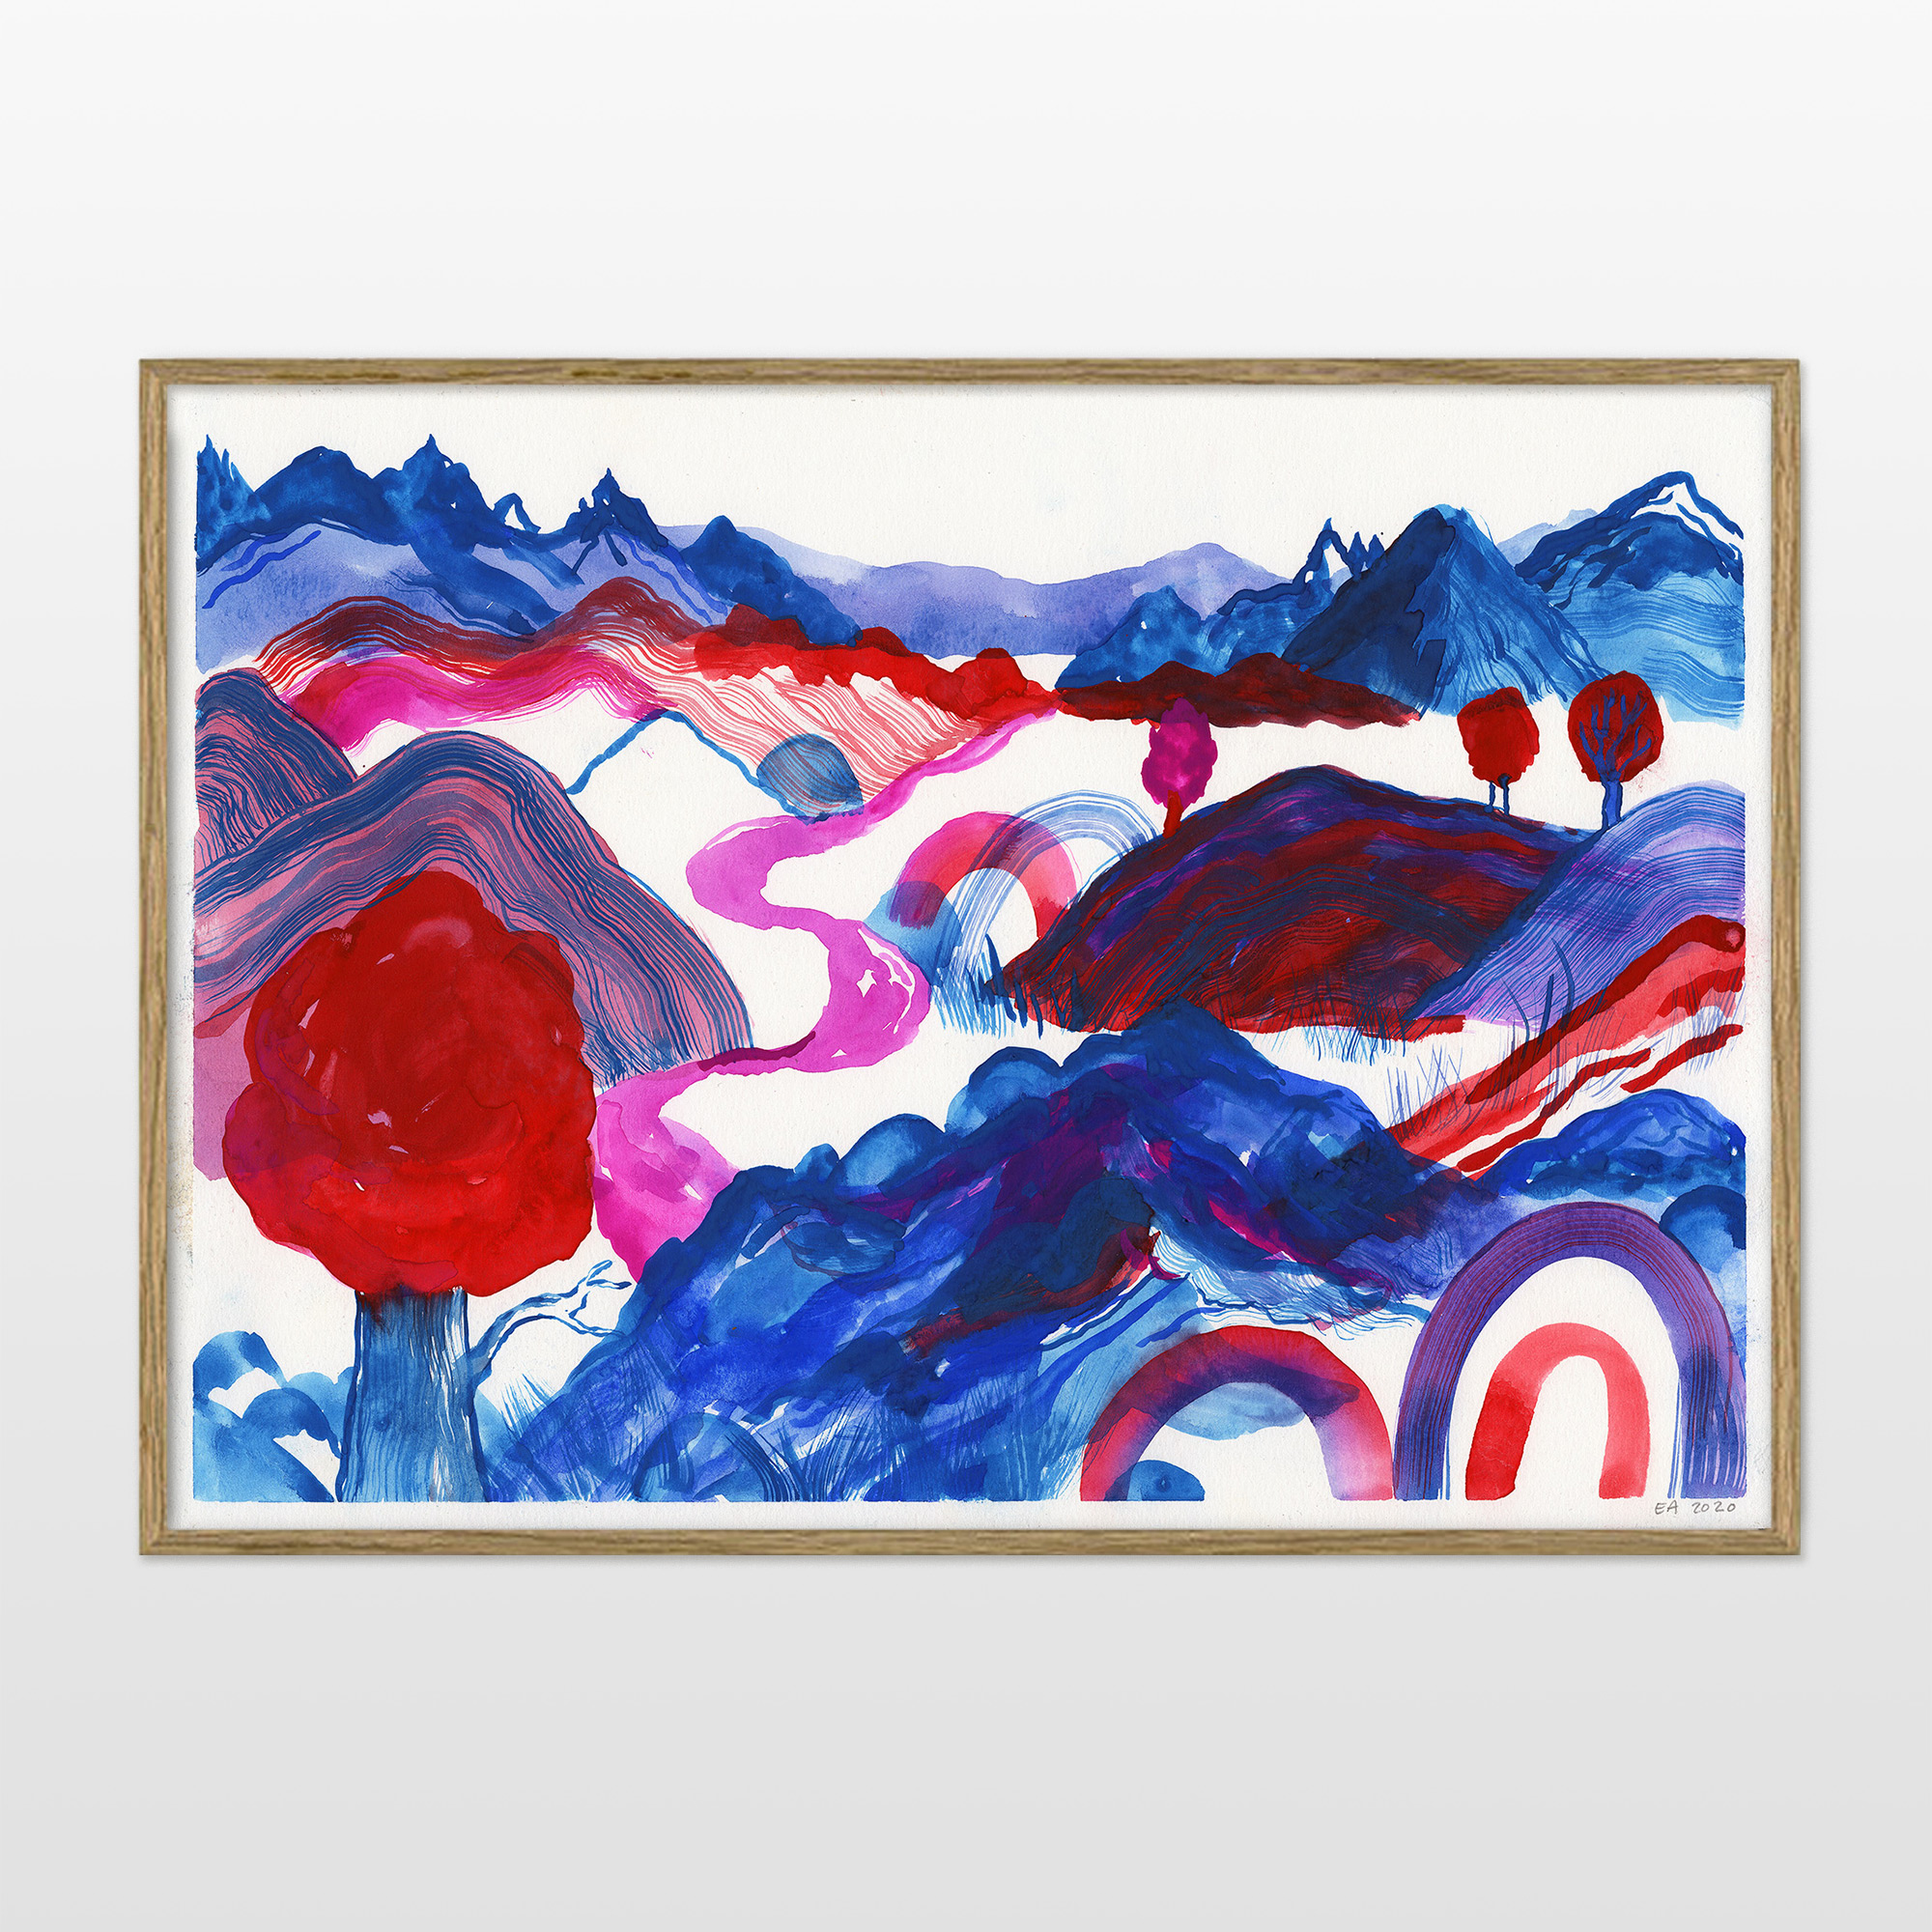 drawings, watercolor-paintings, aesthetic, colorful, family-friendly, figurative, landscape, botany, nature, patterns, blue, red, turquoise, violet, ink, watercolor, beautiful, danish, decorative, design, forest, modern, modern-art, nordic, posters, pretty, prints, scandinavien, Buy original high quality art. Paintings, drawings, limited edition prints & posters by talented artists.